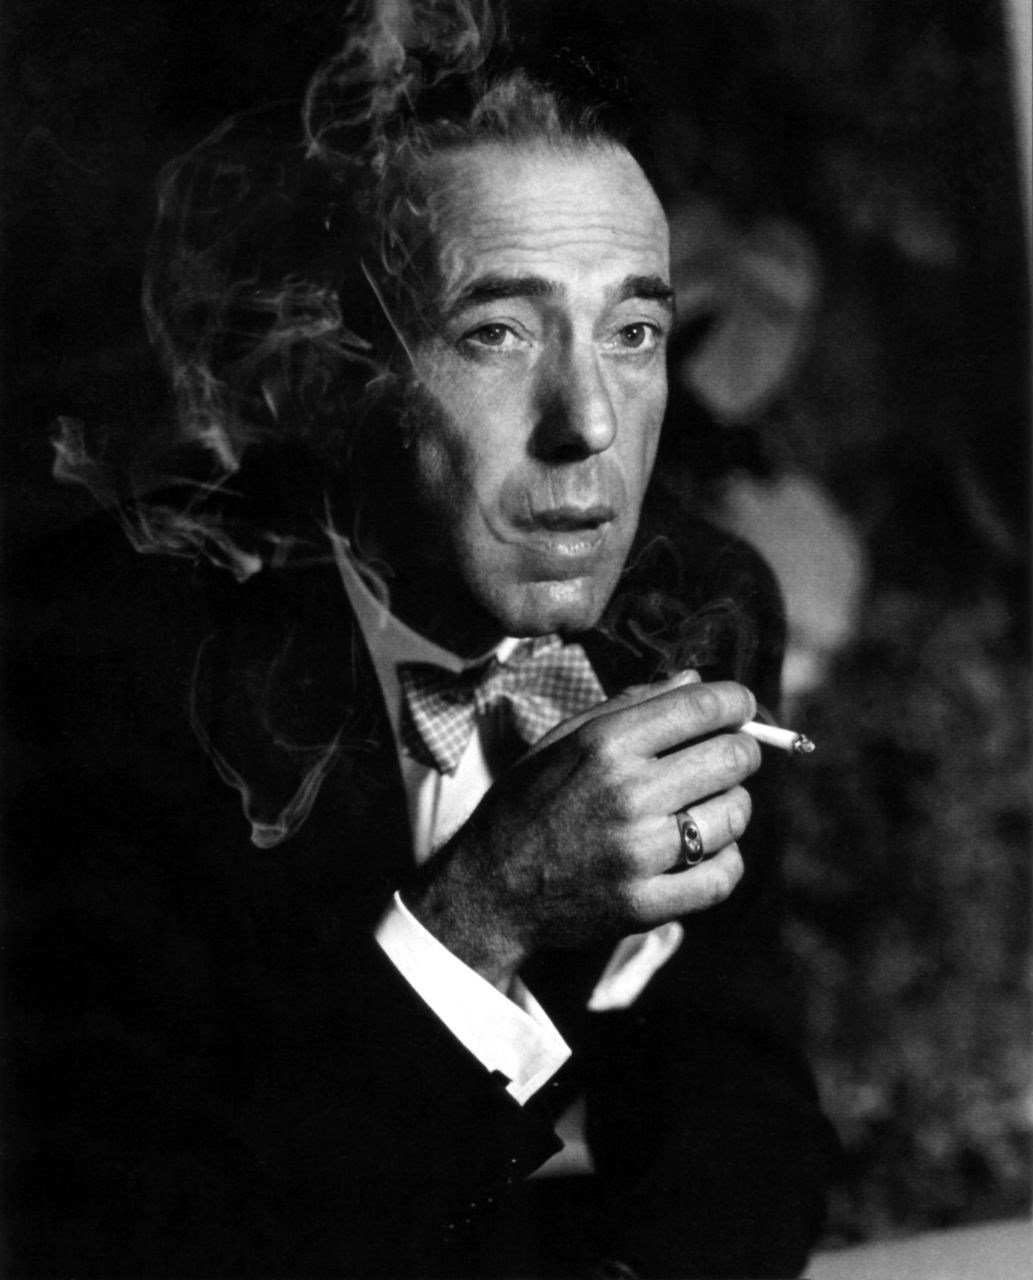 humphrey bogart interesting facts